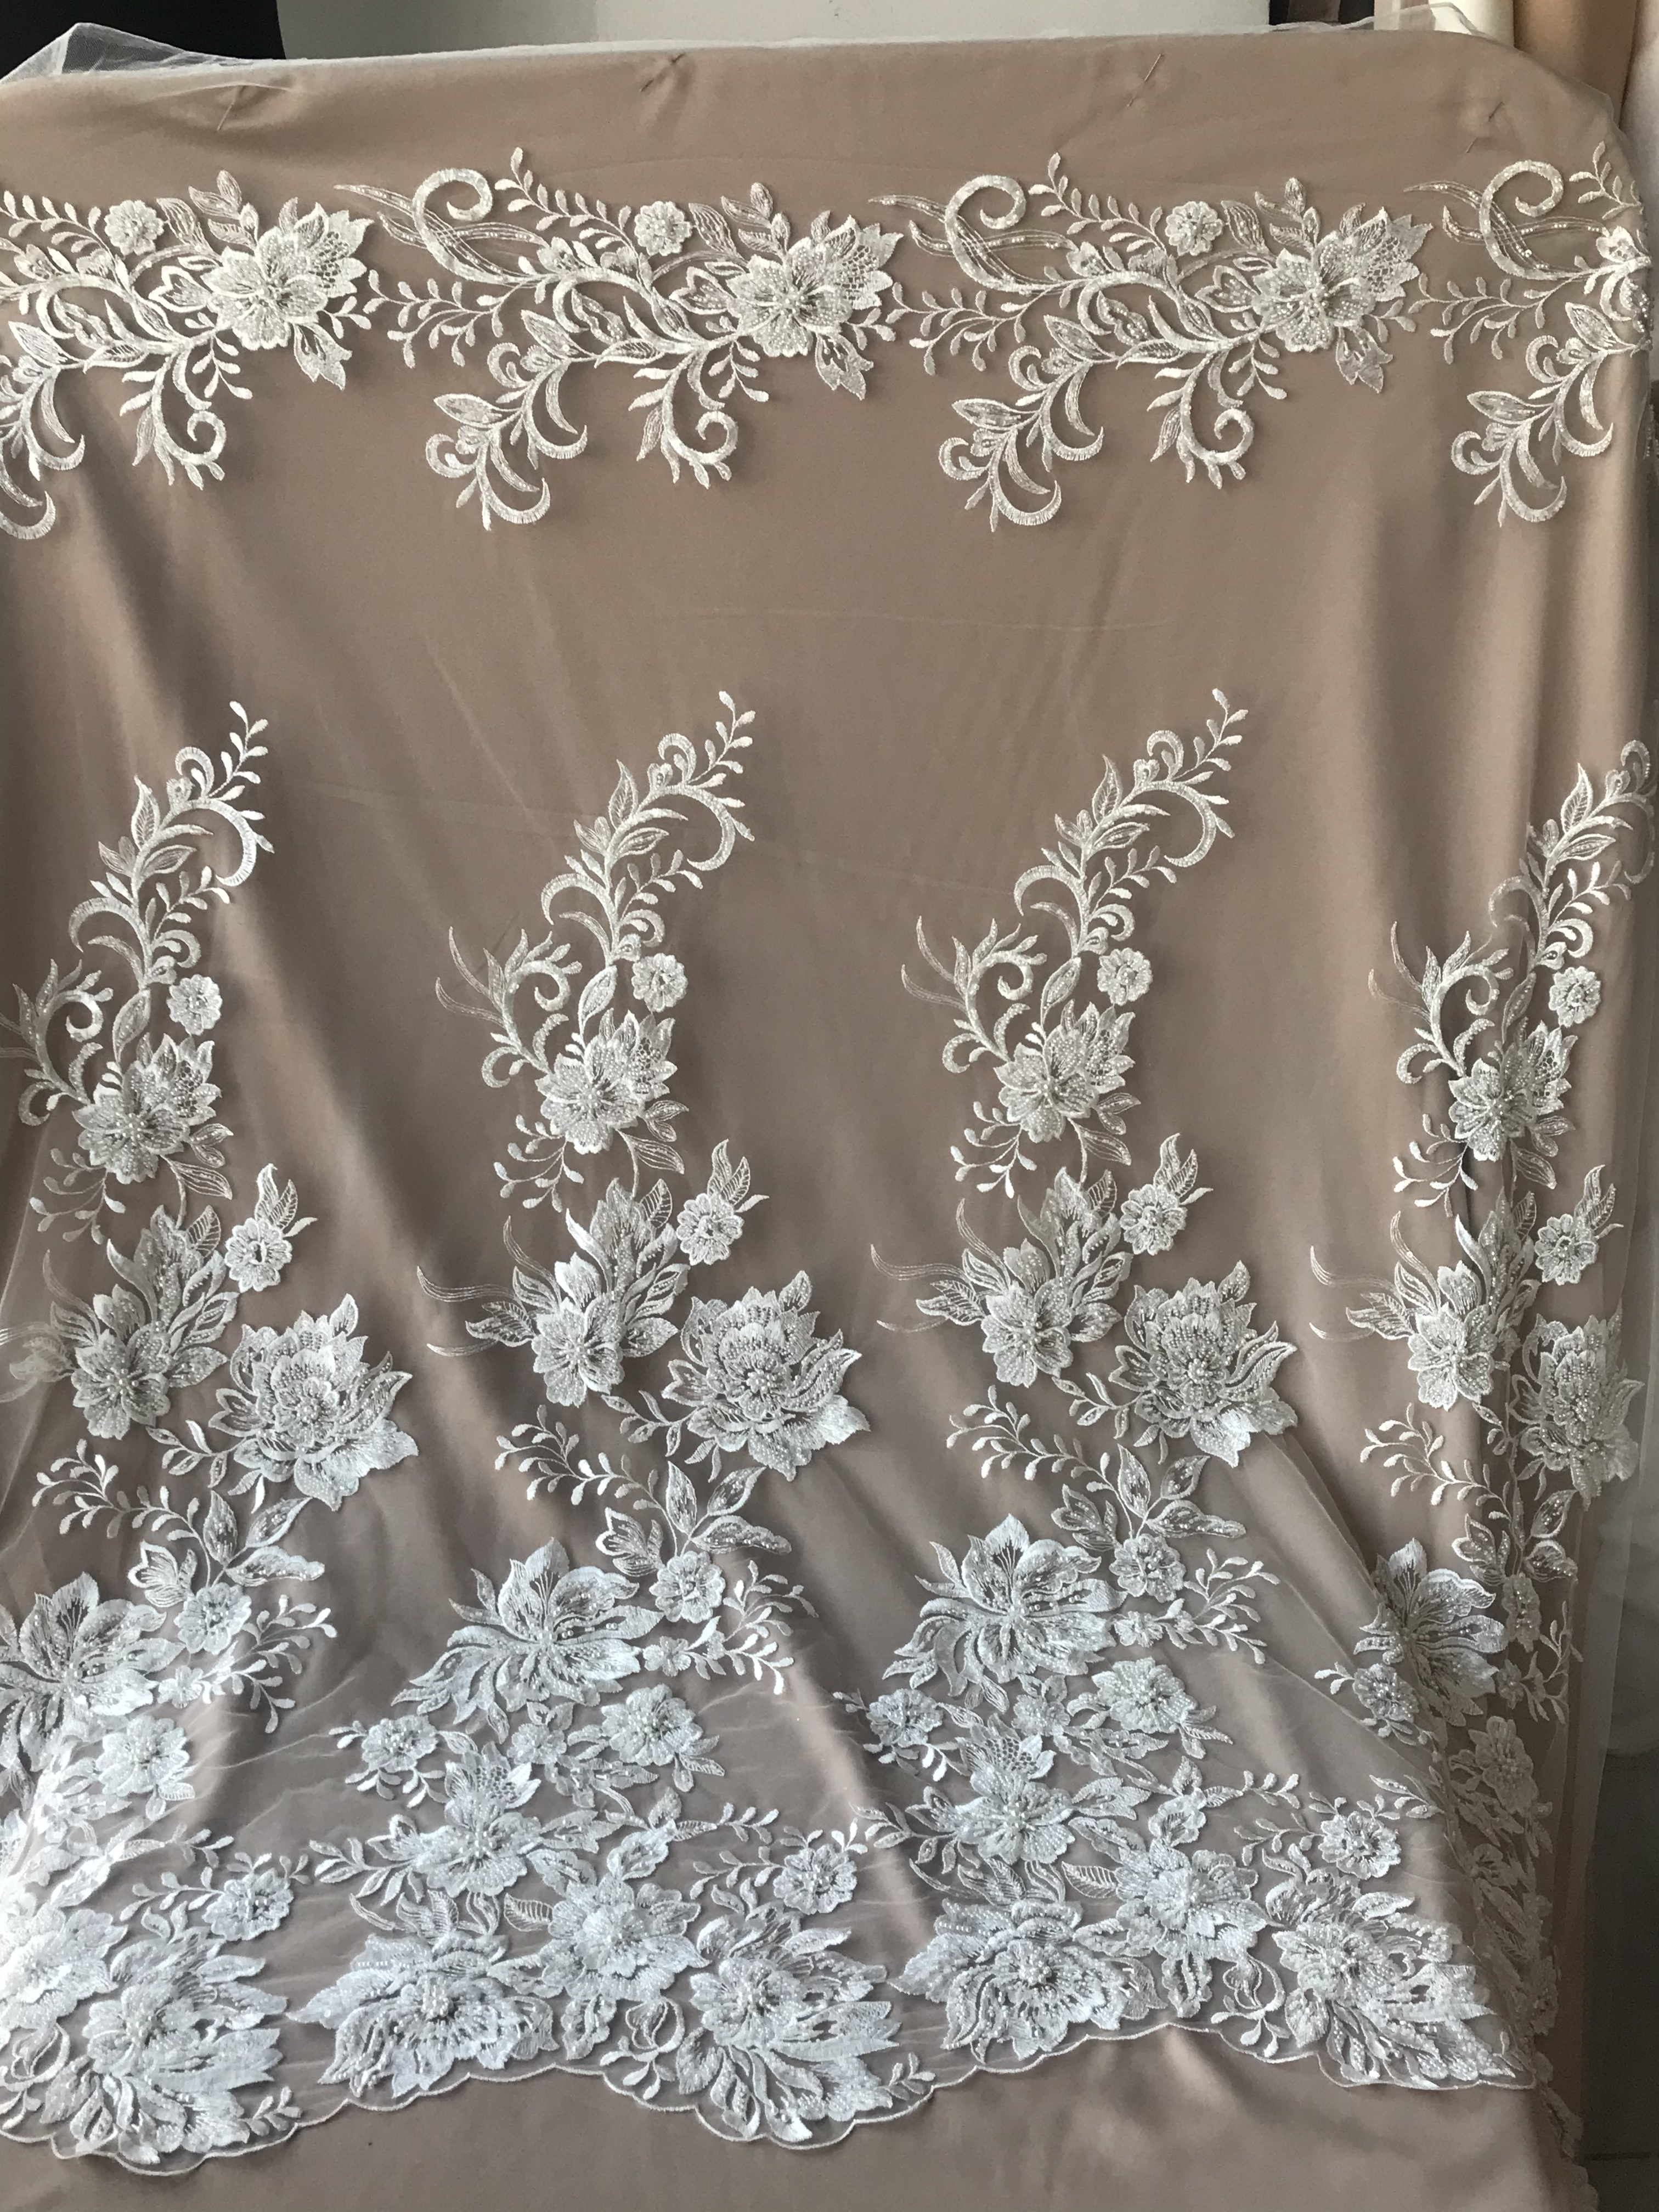 bridal tulle lace fabric with pearls tulle lace fabric black pearl bead tulle fabric with Gradient colors heavy bead mesh lace fabric